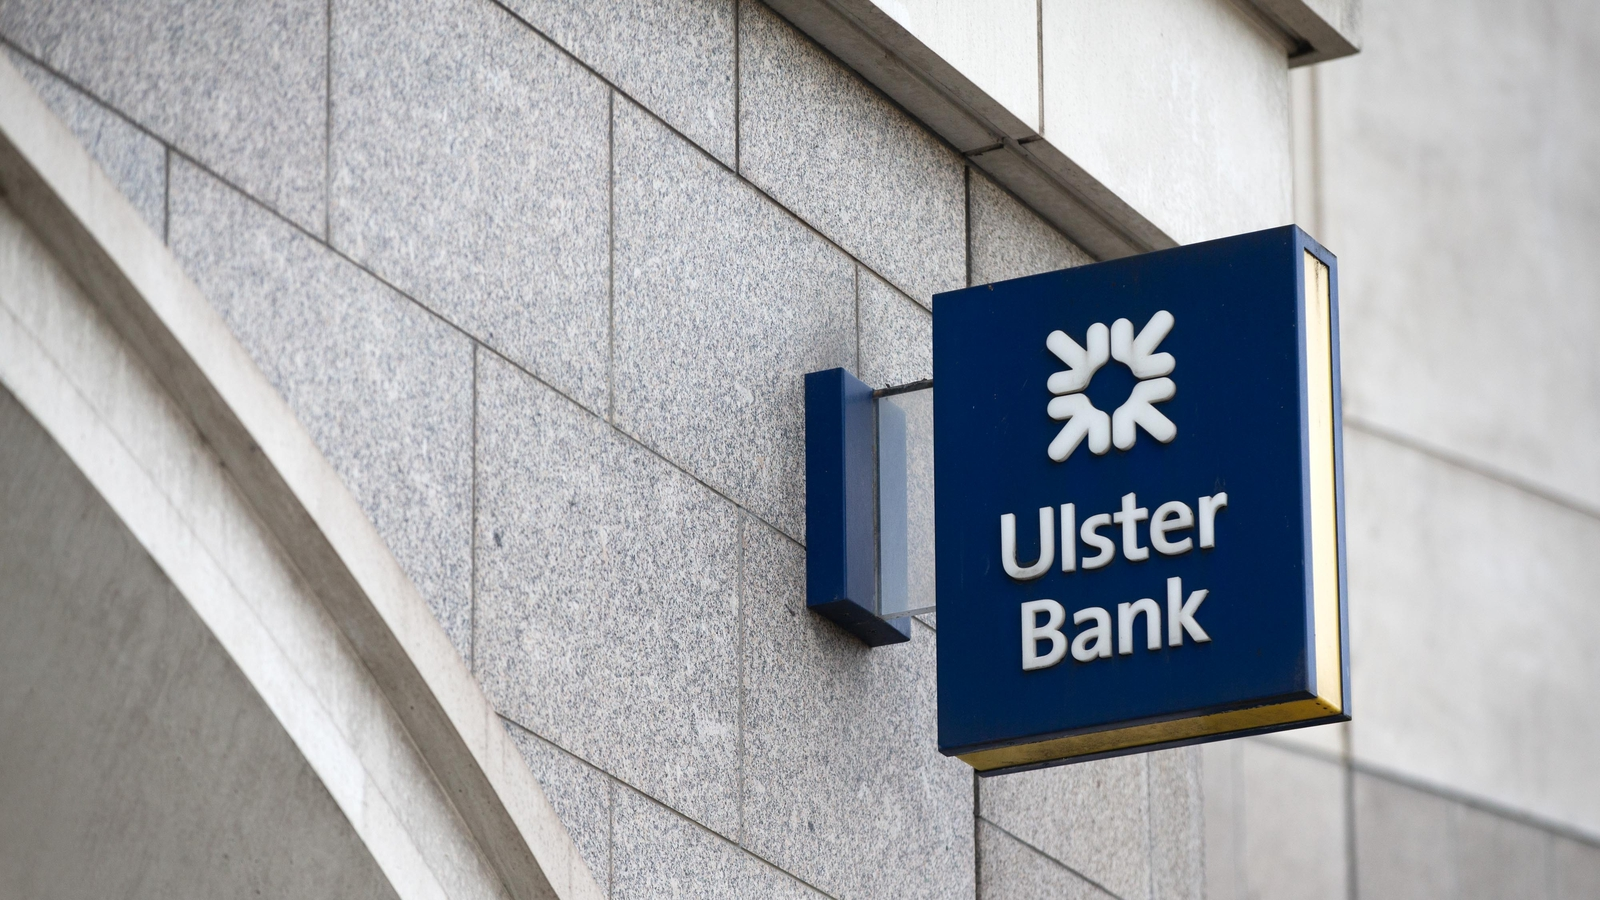 Ulster Bank staff to vote on enhanced redundancy plans